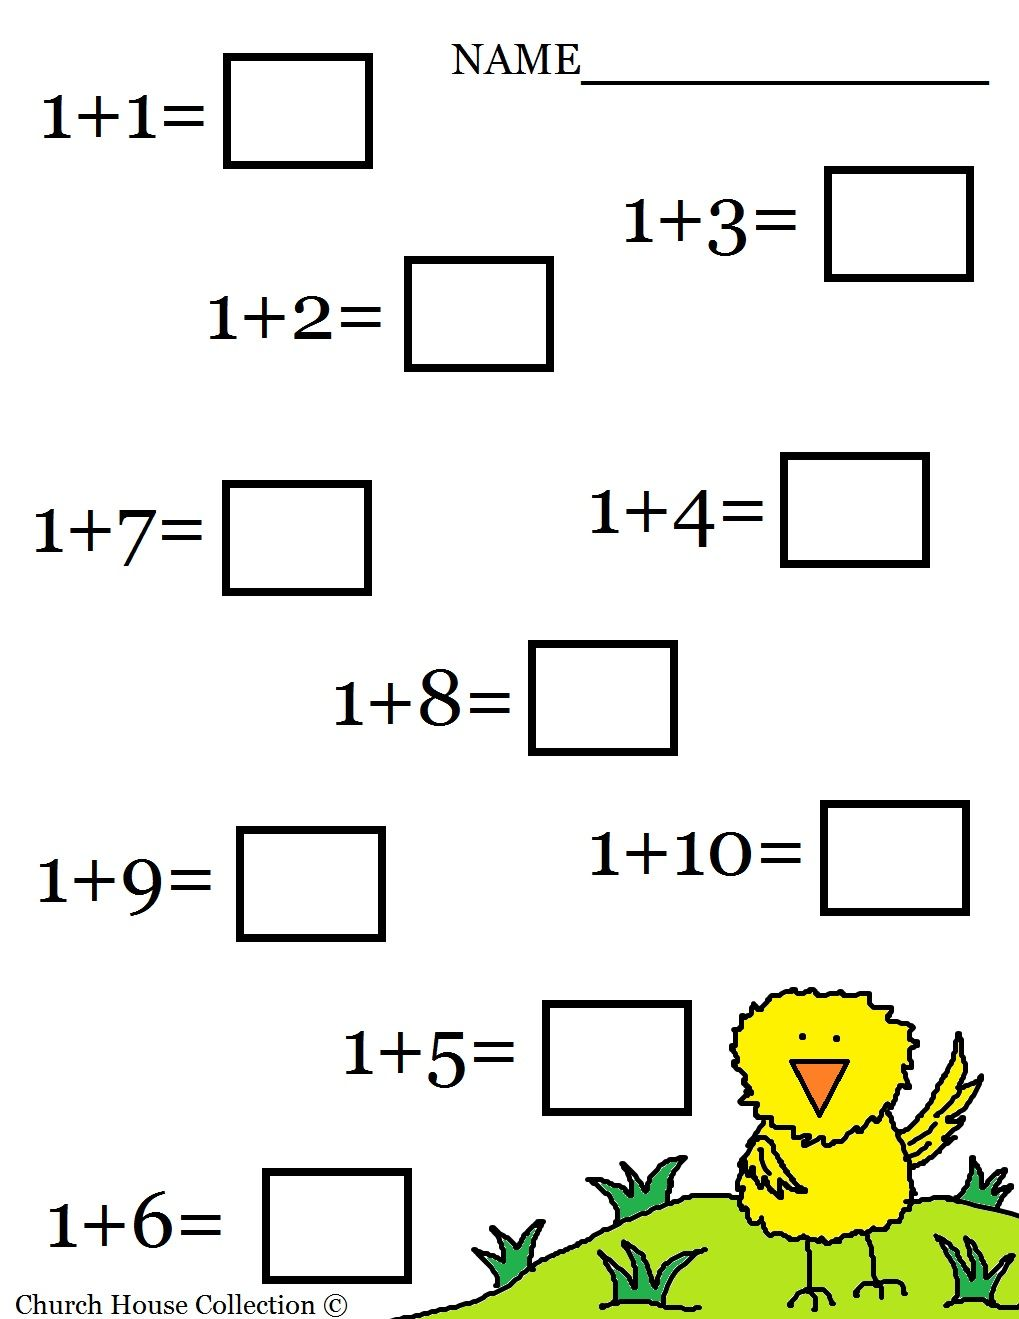 Proatmealus  Winsome  Images About Worksheets  Math On Pinterest  Math Sheets  With Foxy  Images About Worksheets  Math On Pinterest  Math Sheets Math Worksheets For Kindergarten And Simple Addition With Extraordinary Multiplying And Dividing Mixed Numbers Worksheet Also Present Tense Worksheets For Grade  In Addition Geometry Worksheets With Answers And Venn Diagram Worksheets As Well As Year  Shapes Worksheets Additionally Dividing Fraction Worksheets From Pinterestcom With Proatmealus  Foxy  Images About Worksheets  Math On Pinterest  Math Sheets  With Extraordinary  Images About Worksheets  Math On Pinterest  Math Sheets Math Worksheets For Kindergarten And Simple Addition And Winsome Multiplying And Dividing Mixed Numbers Worksheet Also Present Tense Worksheets For Grade  In Addition Geometry Worksheets With Answers From Pinterestcom